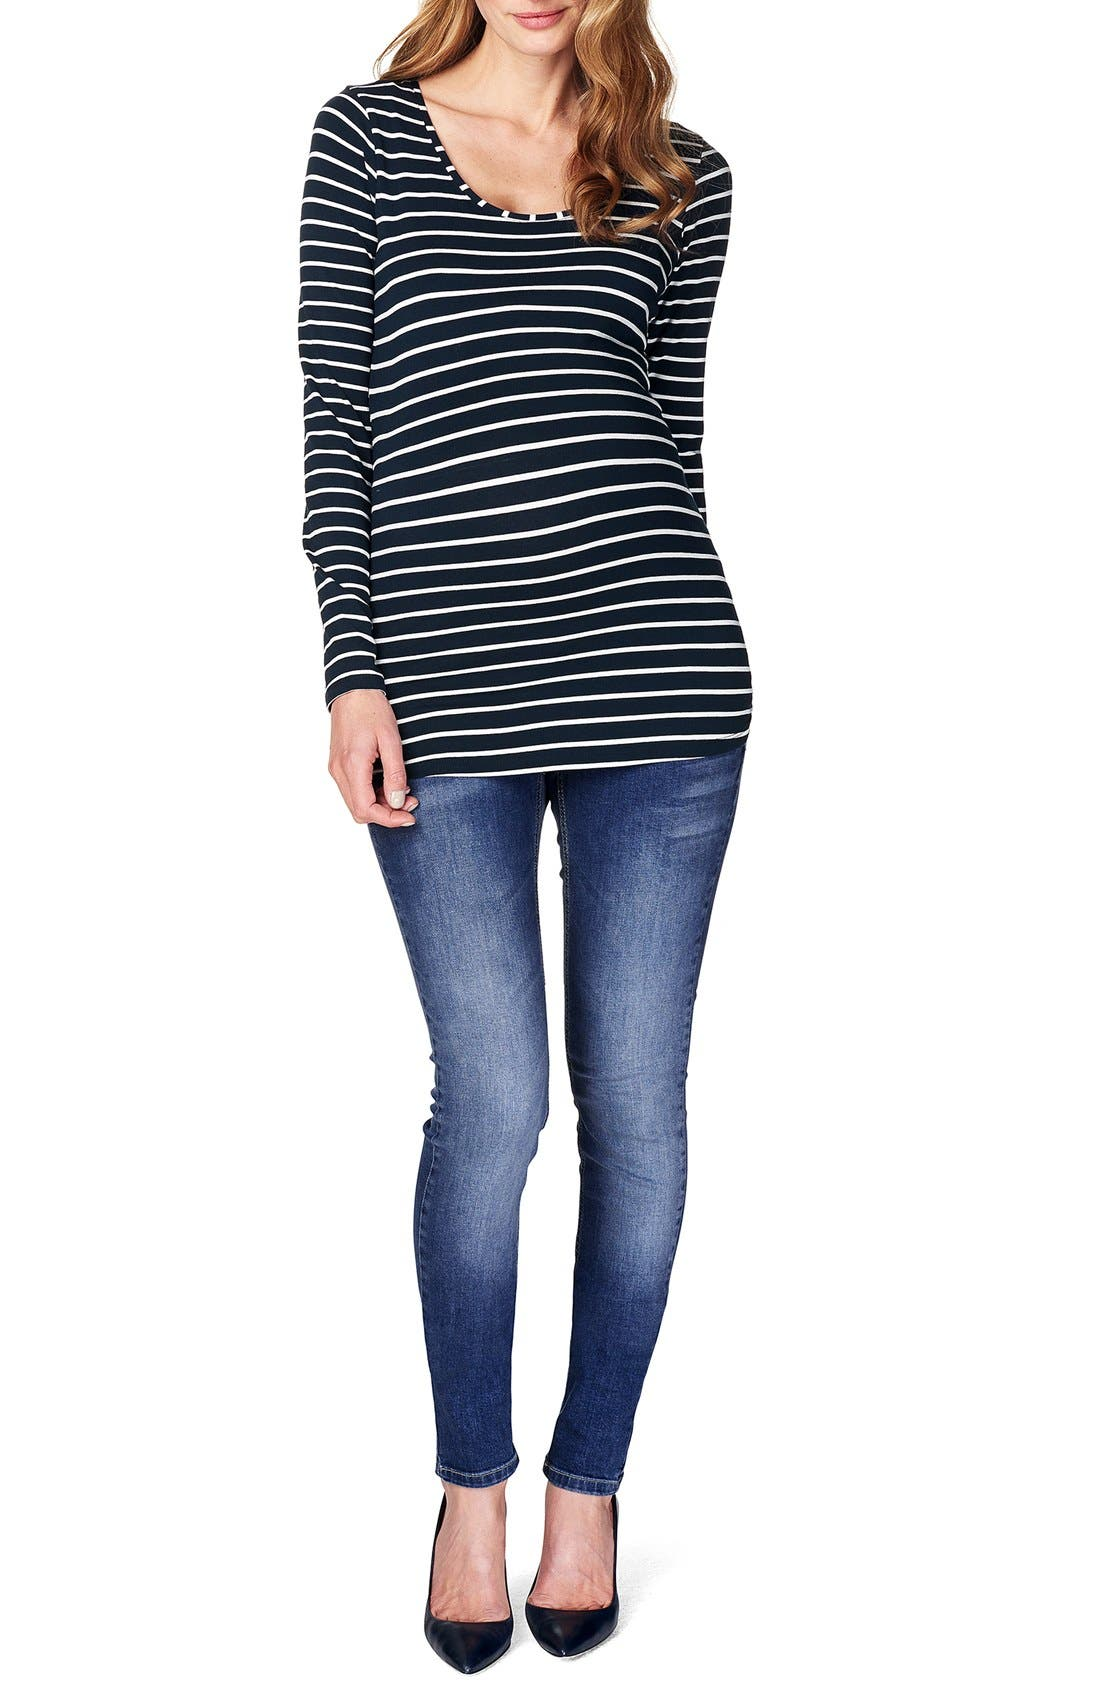 NOPPIES 'Lely' Stripe Scoop Neck Long Sleeve Tee